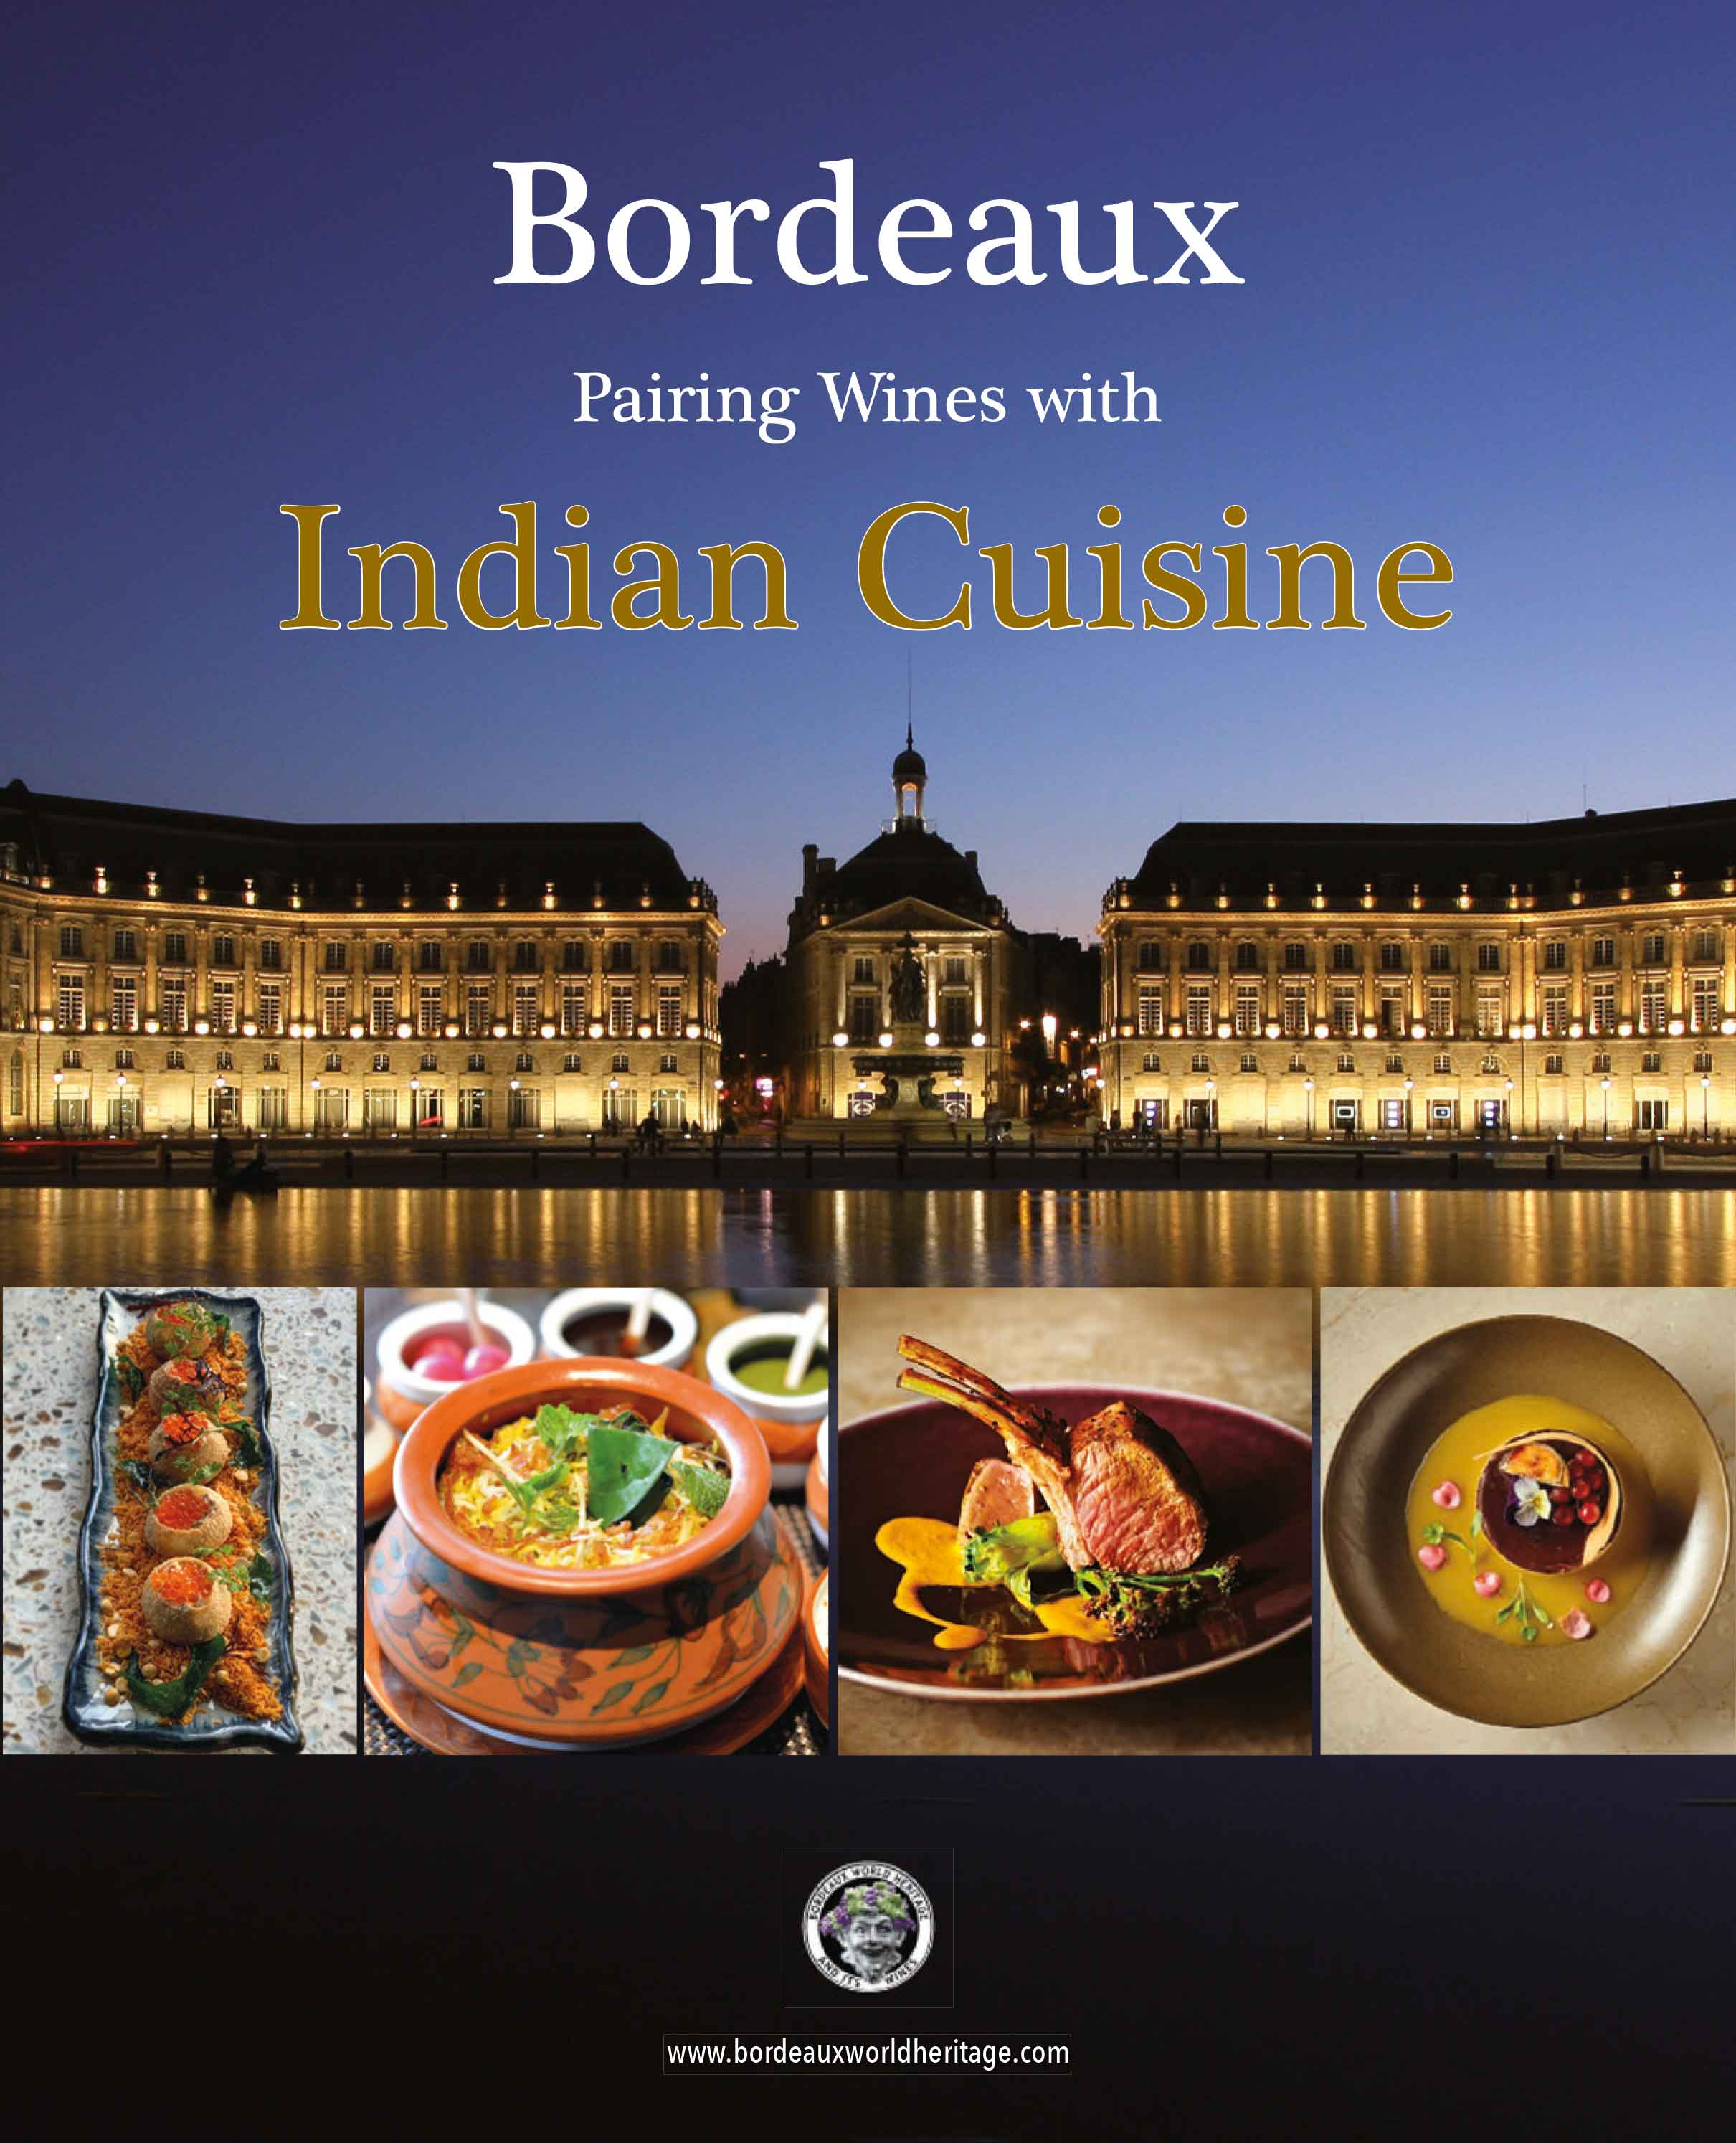 BORDEAUX PAIRING WINES WITH INDIAN CUISINE